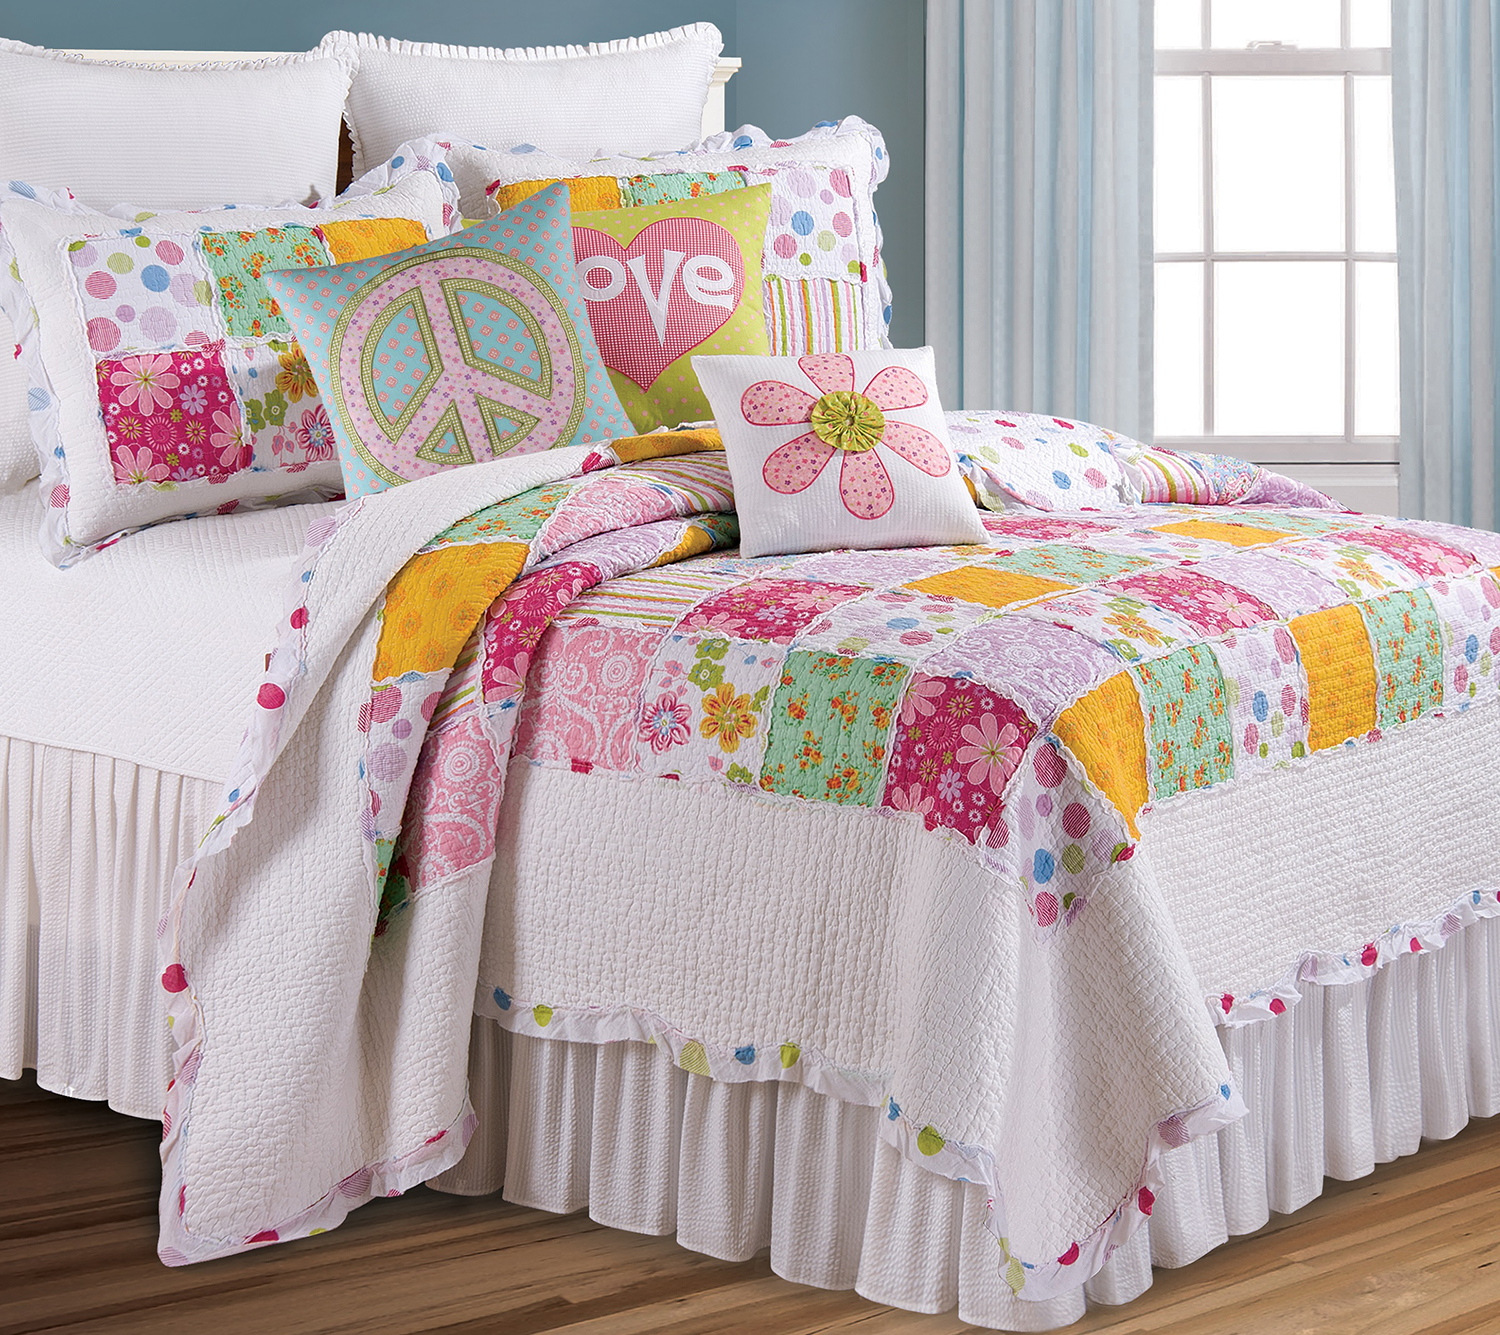 Chloe by C&F Quilts